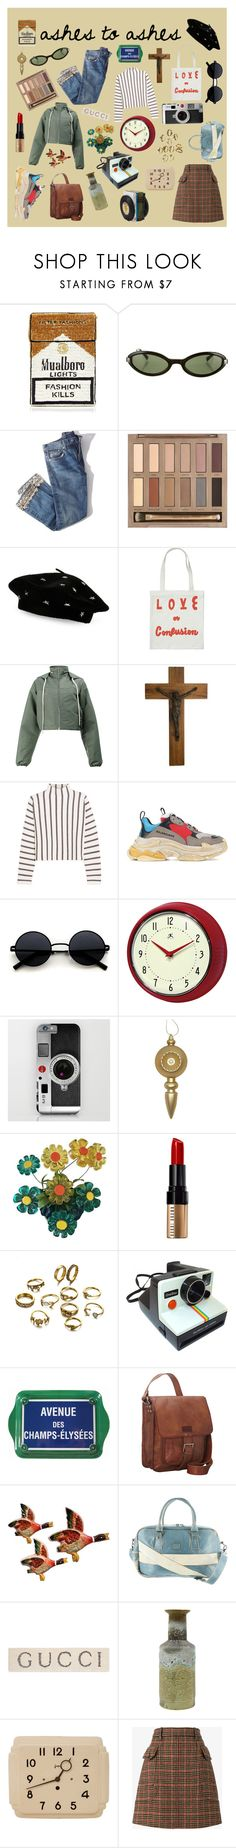 """""""ashes 2 ashes"""" by ranbowi ❤ liked on Polyvore featuring MUA MUA, Moschino, Brock Collection, Urban Decay, Steve Madden, Rick Owens, NOVICA, Maje, Balenciaga and Improvements"""